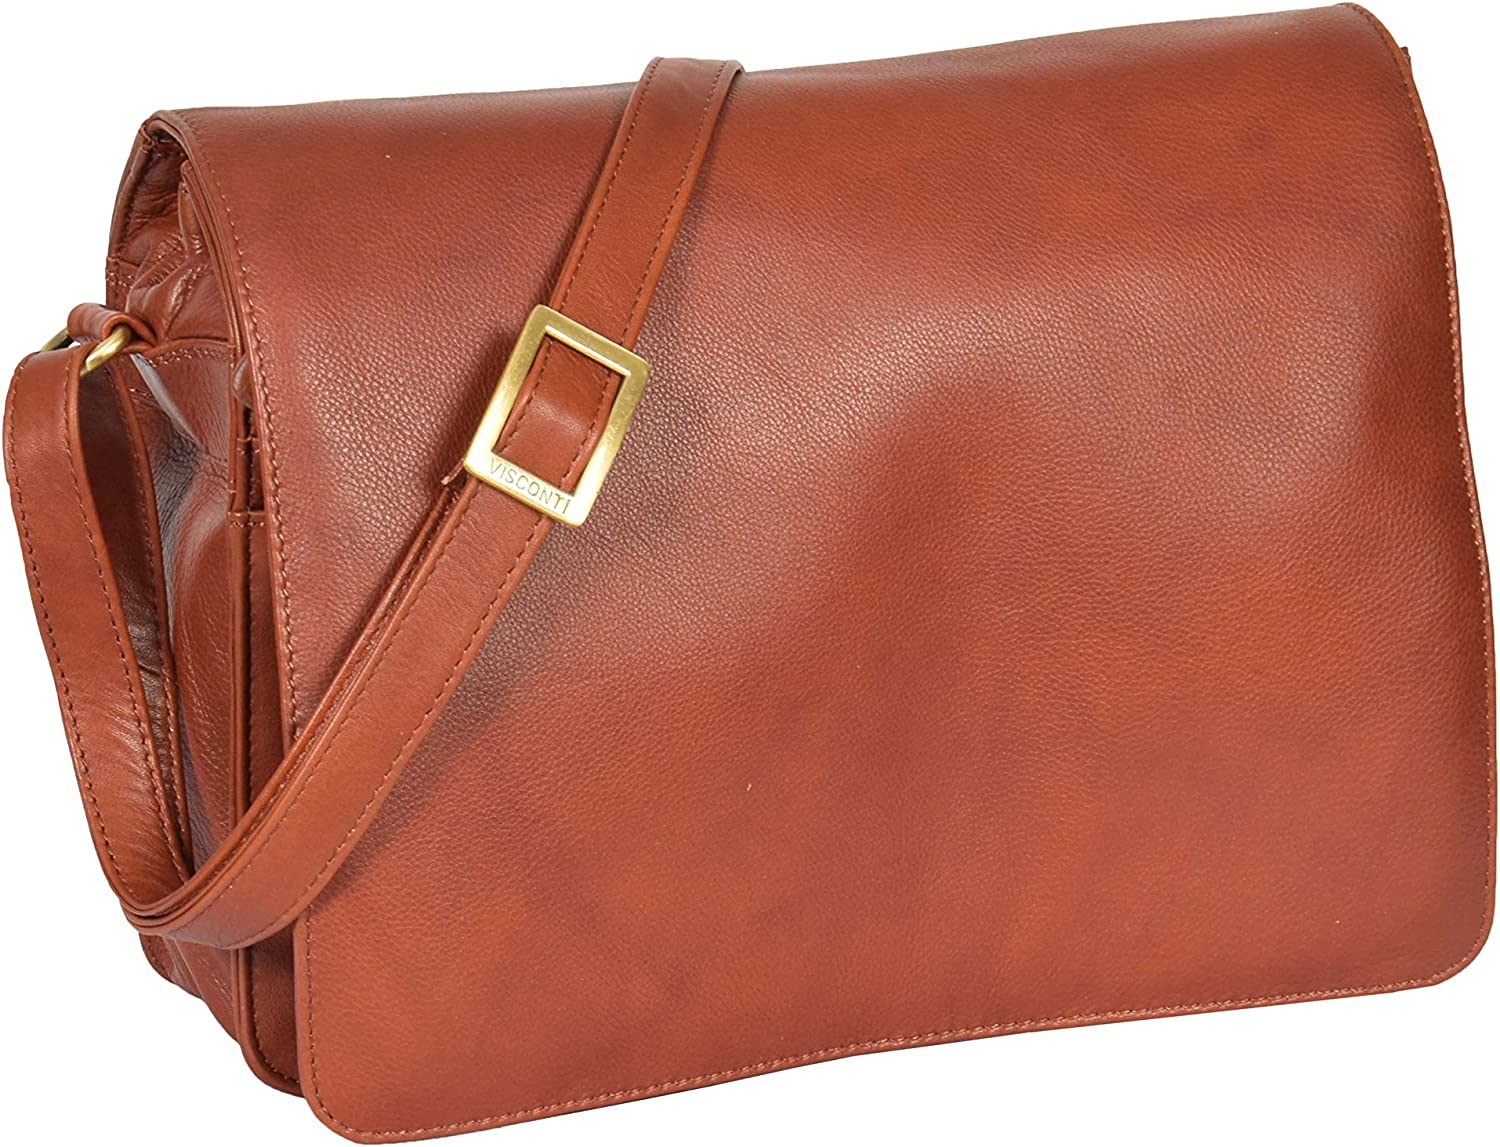 Womens Real Leather Organiser Shoulder Flap Over Cross Body Bag Puerto Rico Brown